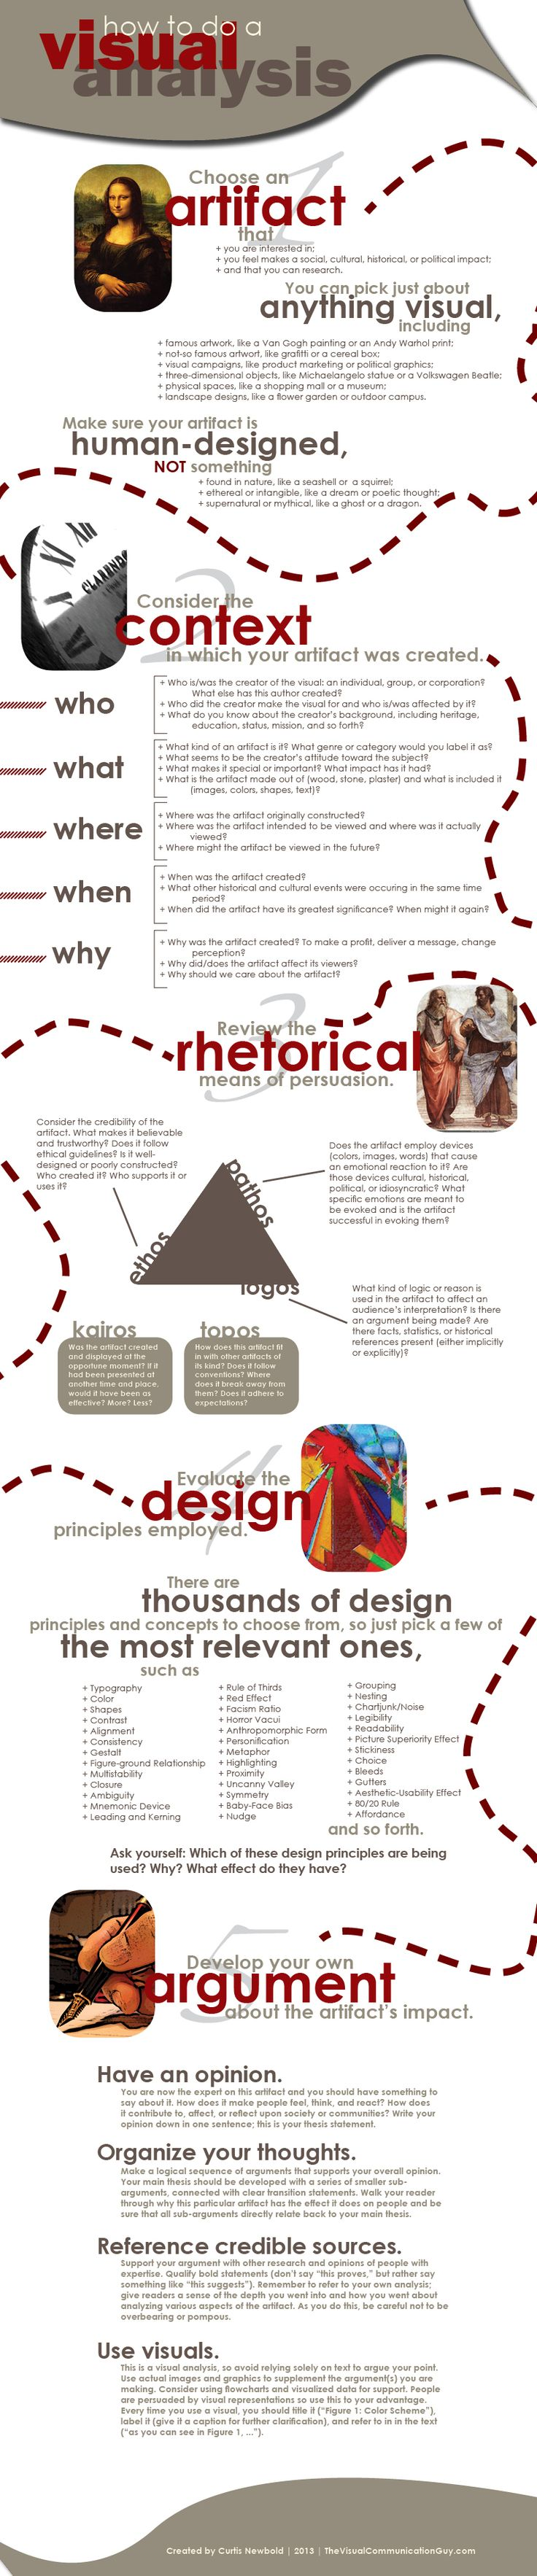 How to do a Visual Analysis- a 5 Step Process Infographic: It's been my experience that students approaching a visual analysis assume that they have to find a visual artifact that is overtly controversial (like a racy lingerie ad or using teenagers to sell products) or else there is nothing to say about it. However, thousands and thousands of visual objects and images that surround us every day make statements that are worth evaluating.